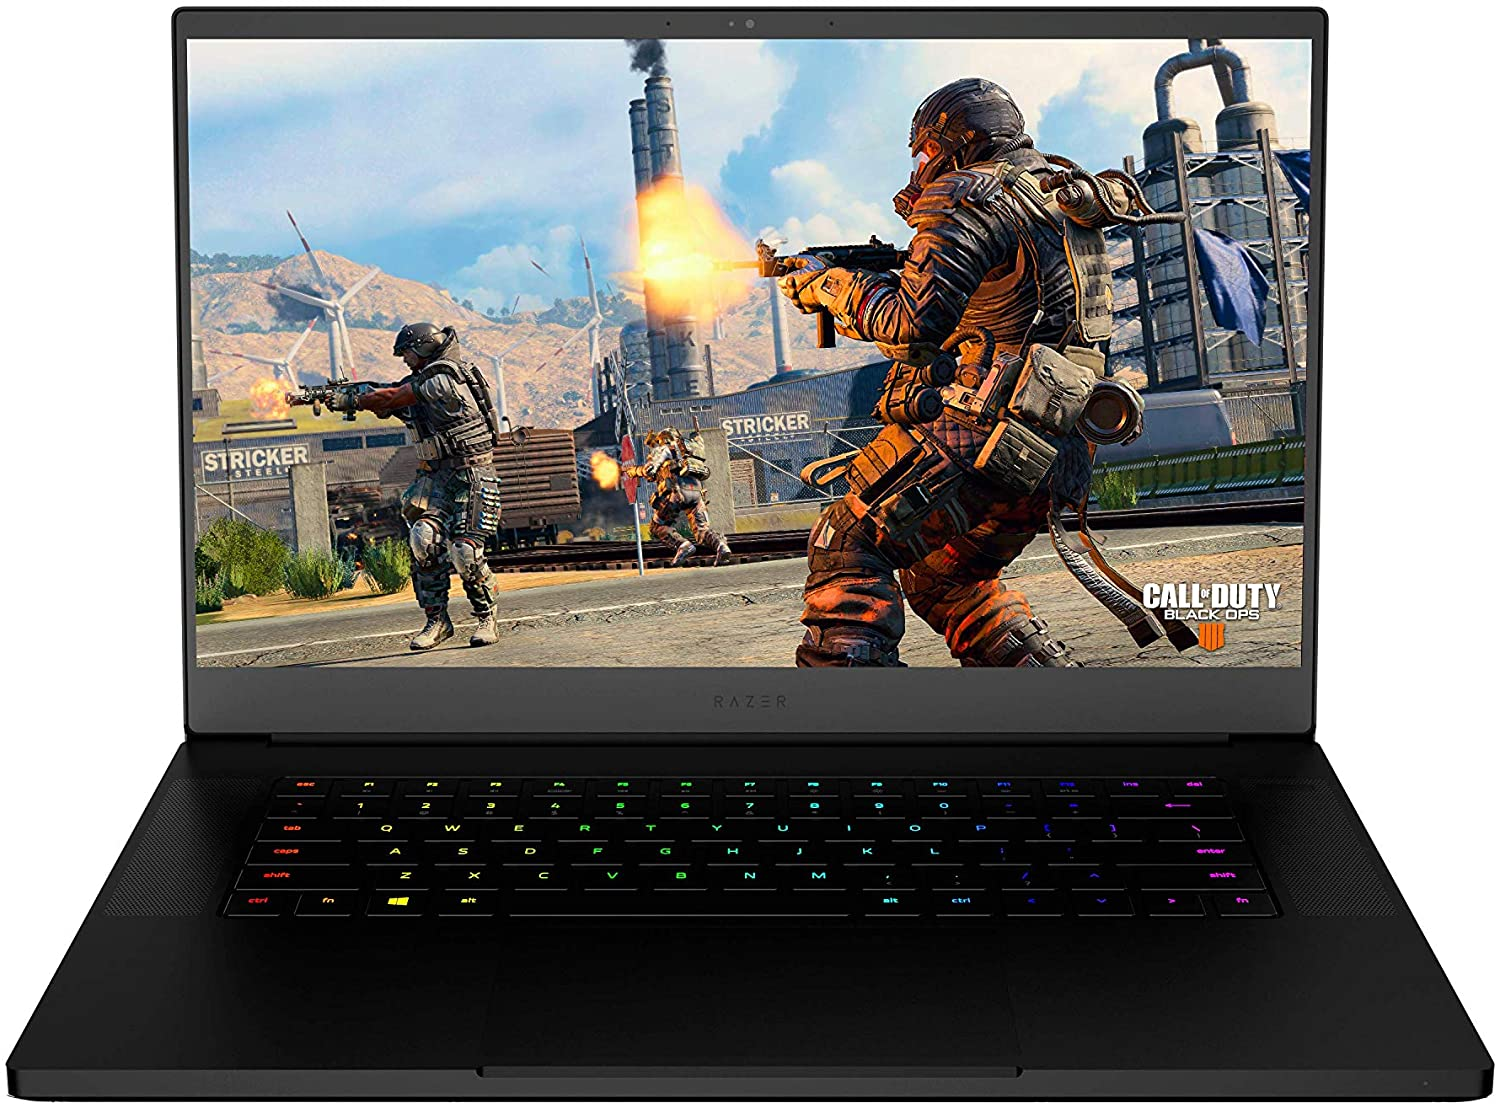 "Razer Blade 15: World's Smallest 15.6"" Gaming Laptop - 144Hz Full HD Thin Bezel - 8th Gen Intel Core i7-8750H 6 Core - NVIDIA GeForce GTX 1070 Max-Q - 16GB RAM - 512GB SSD - Windows 10 - CNC Aluminum"